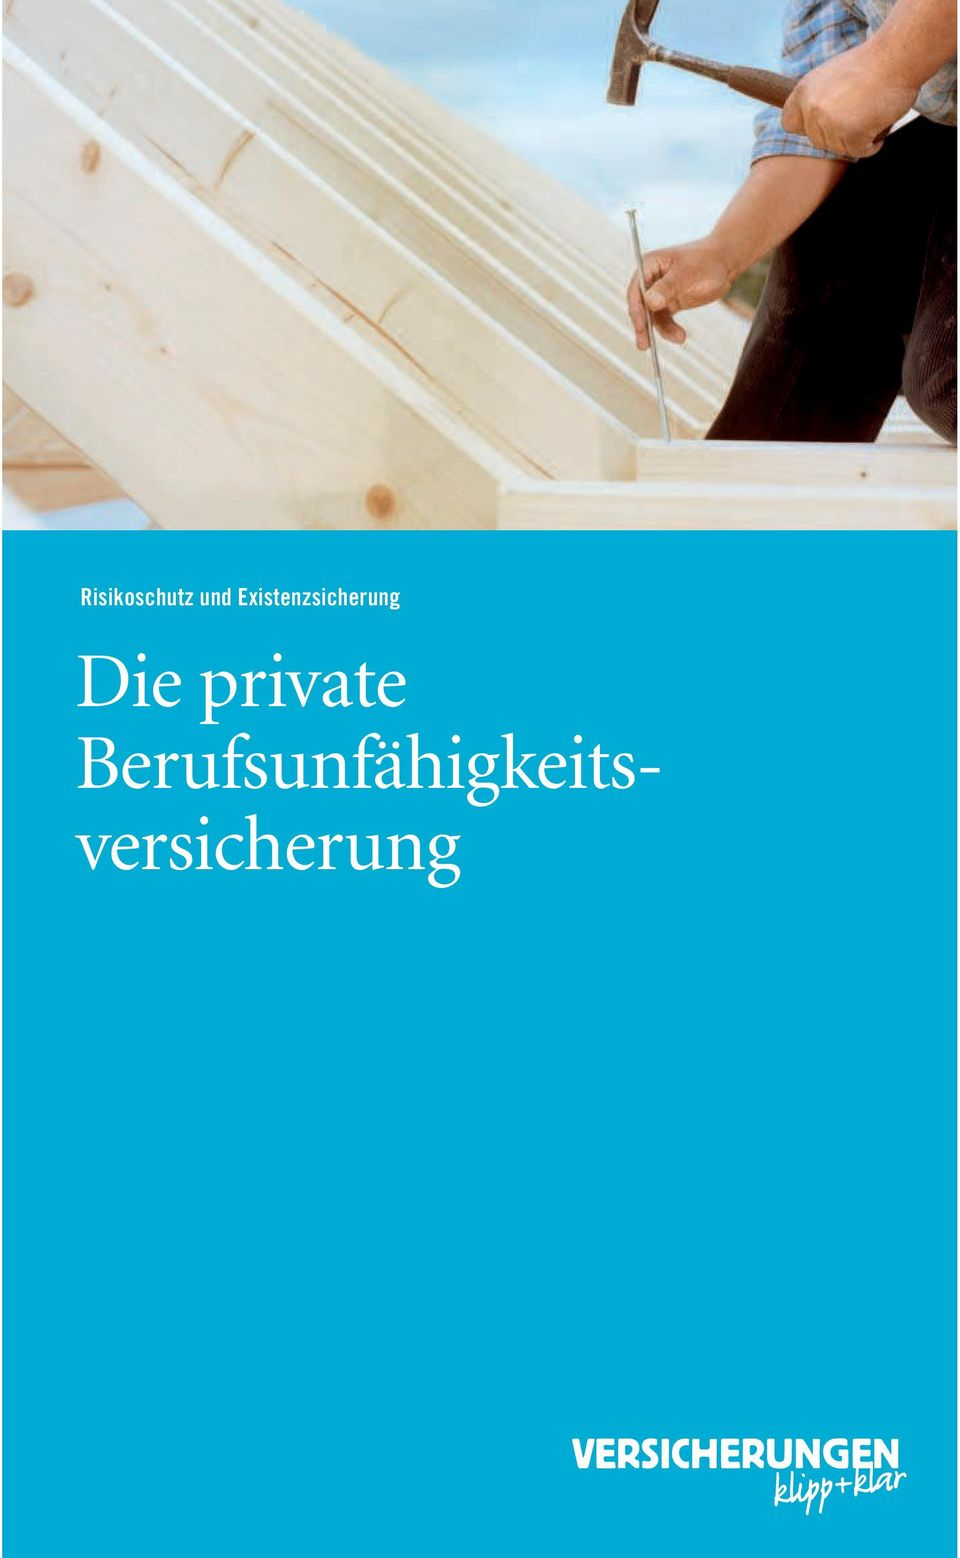 Die private